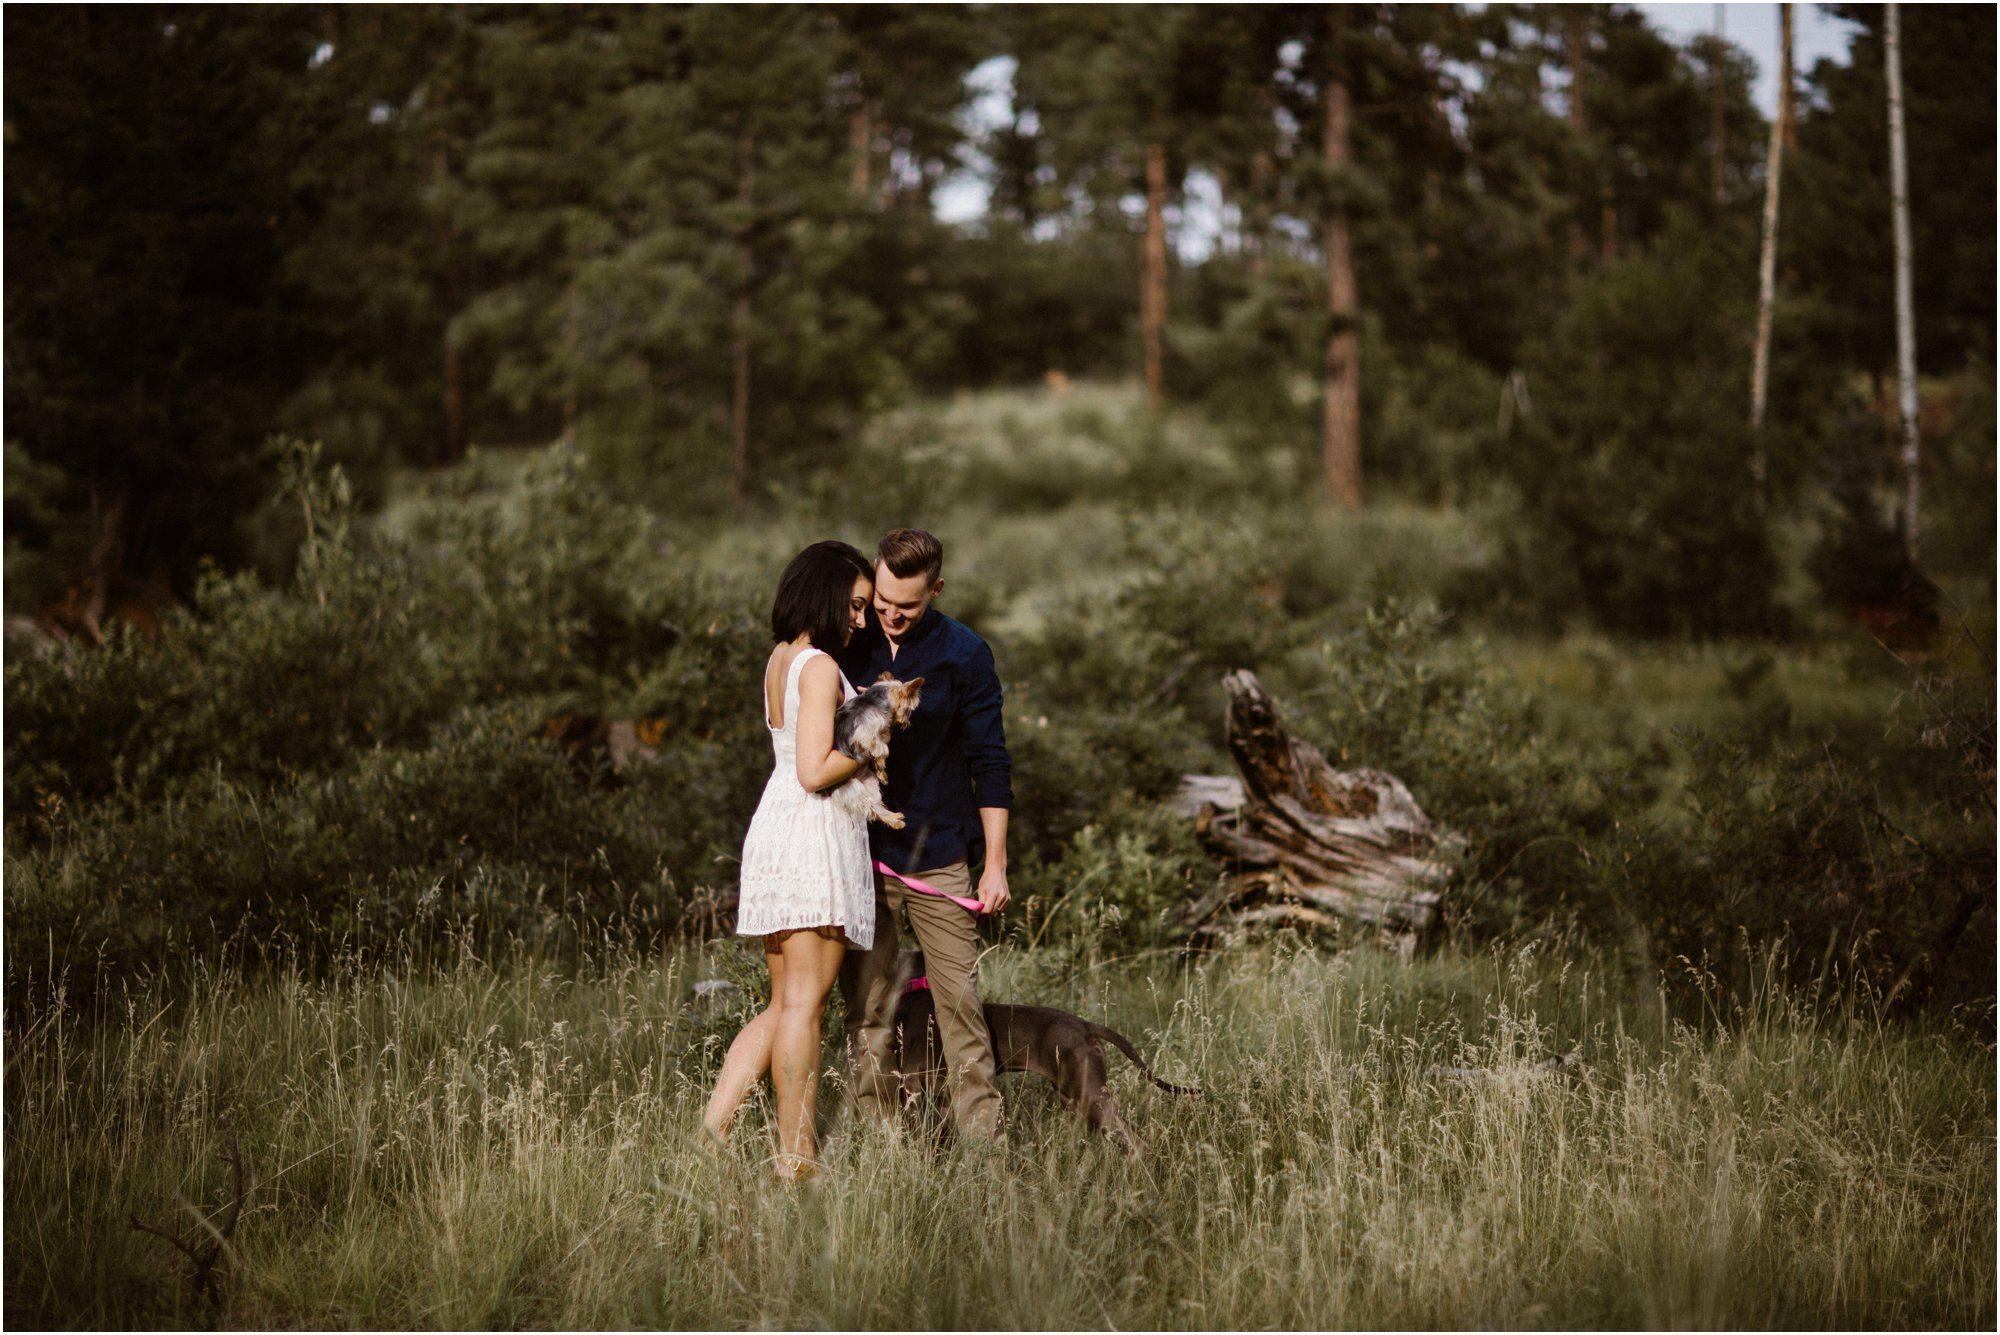 066Blue Rose Photography_ Albuquerque Engagement Photographer_ Blue Rose Studios_ Anniversary Pictures Santa Fe Photographer